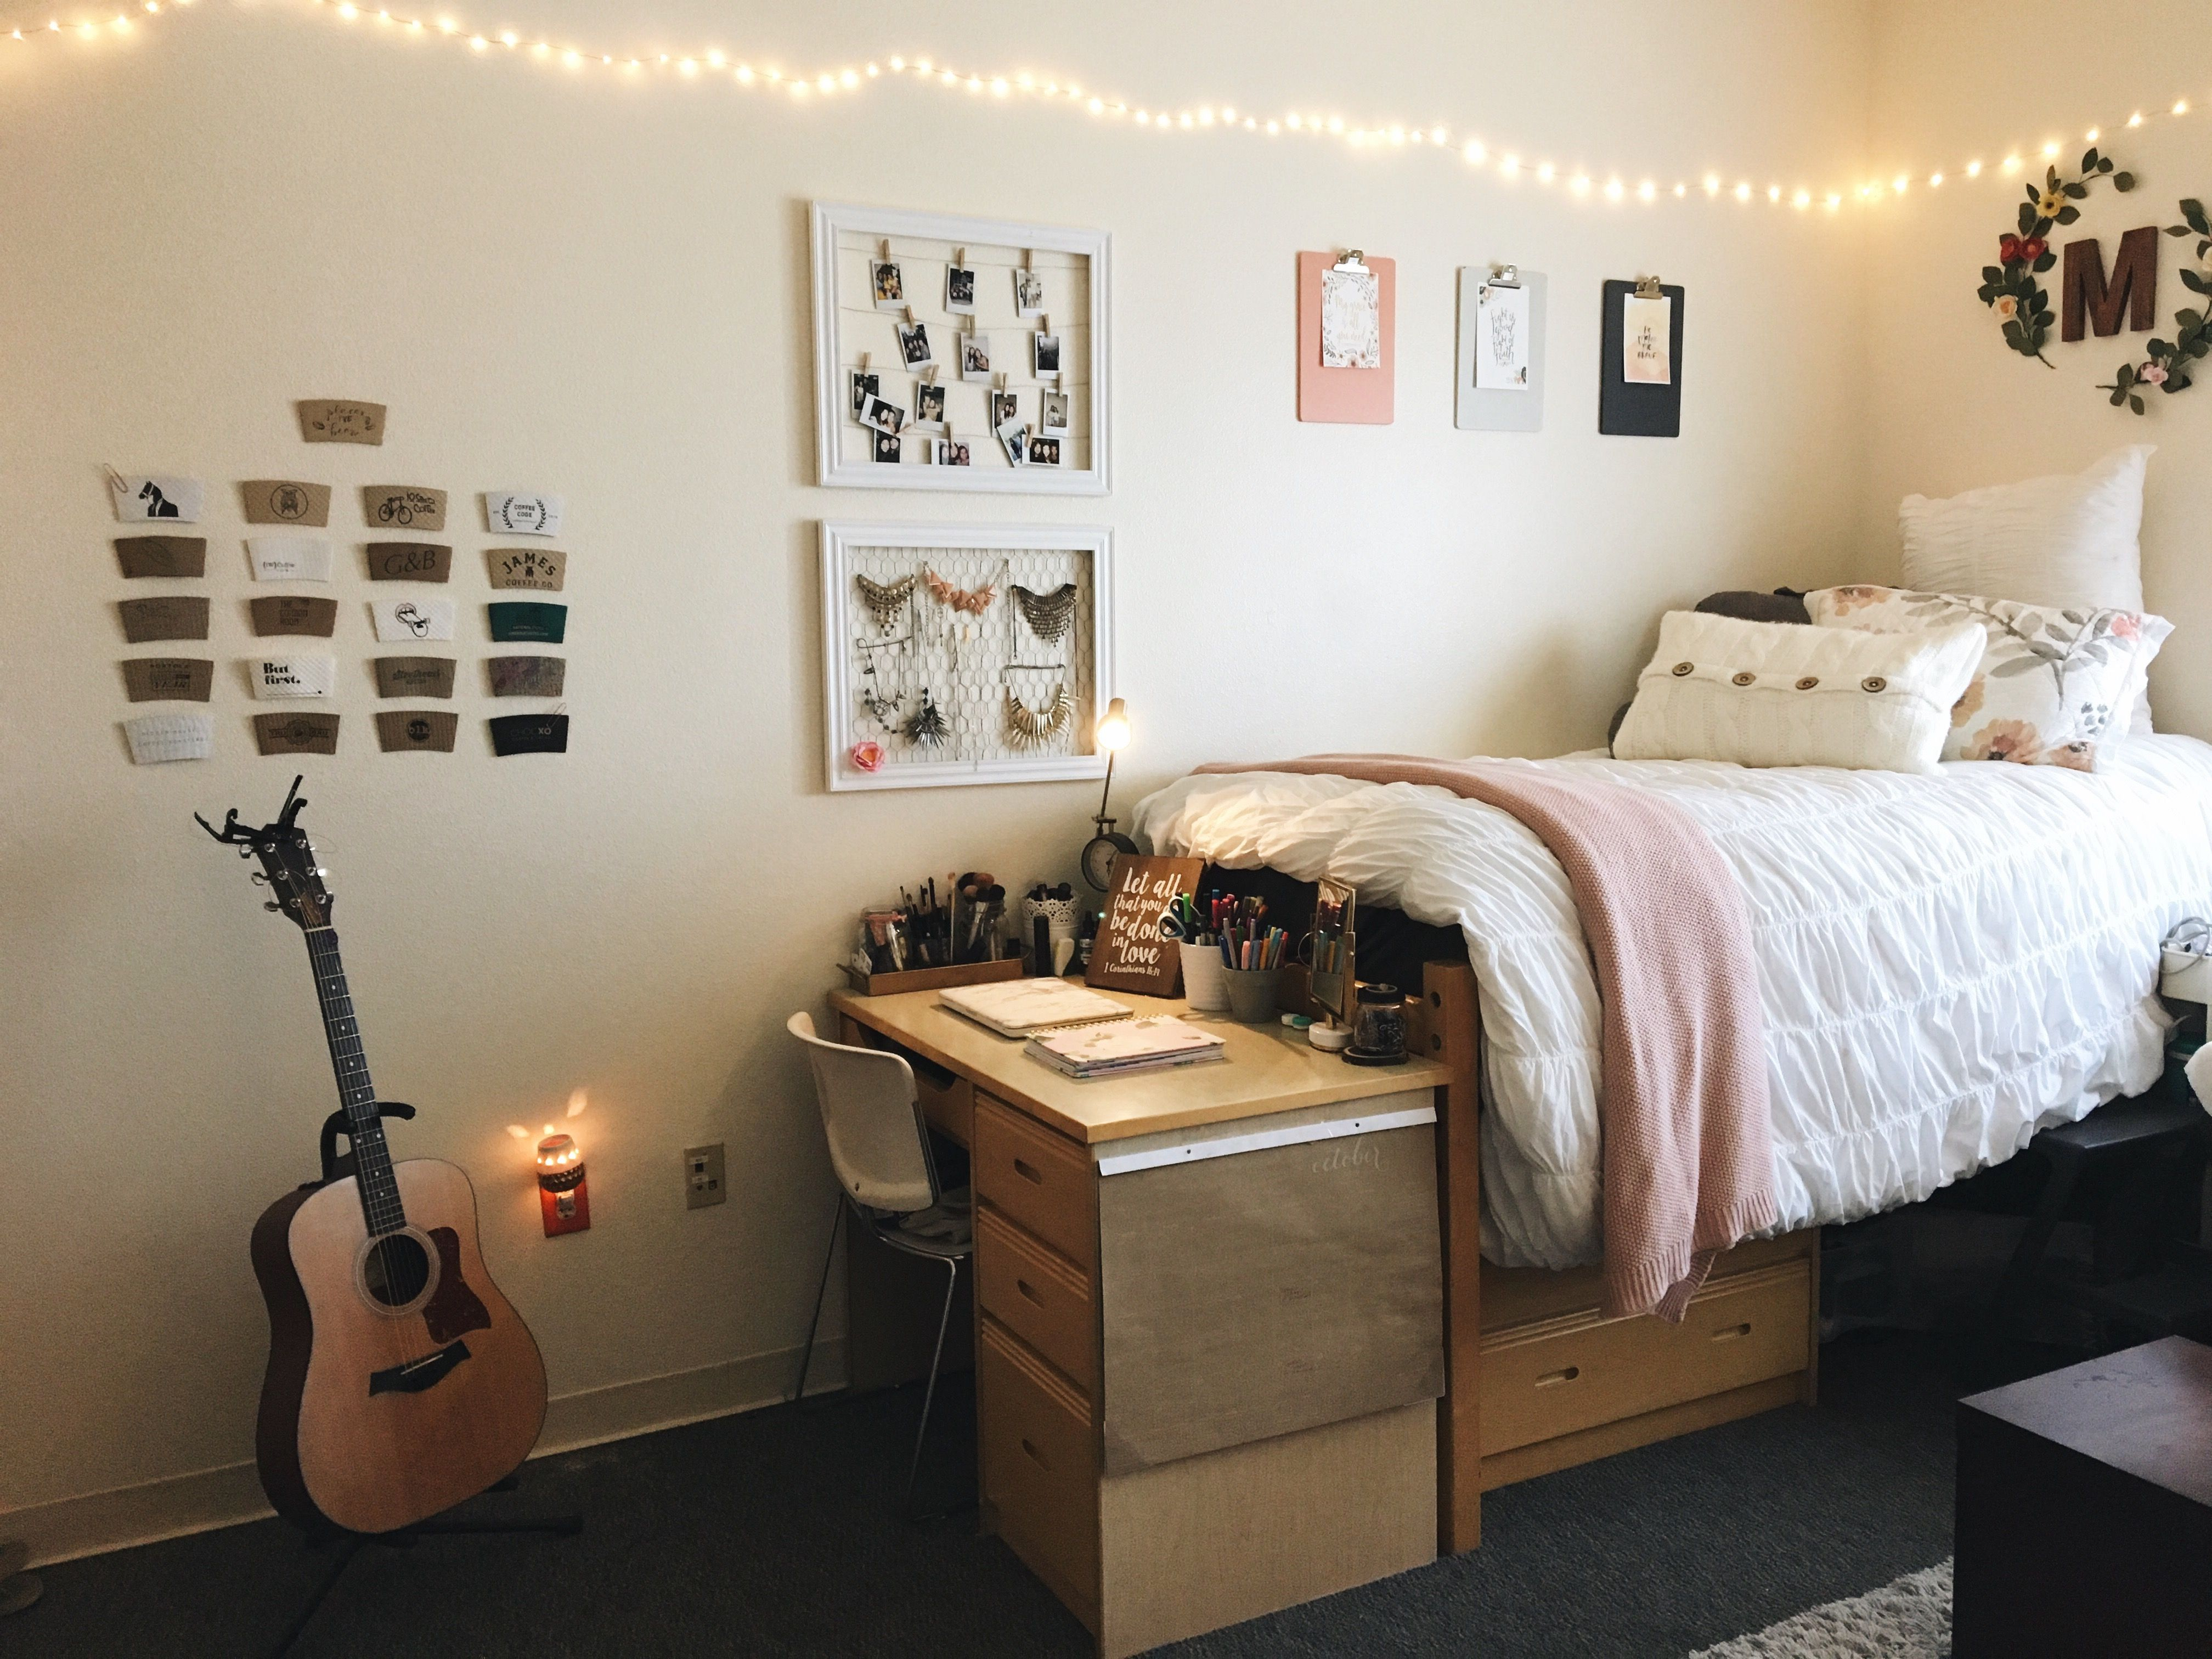 My little nook c o l l e g e college dorm rooms - College dorm decorating ideas ...